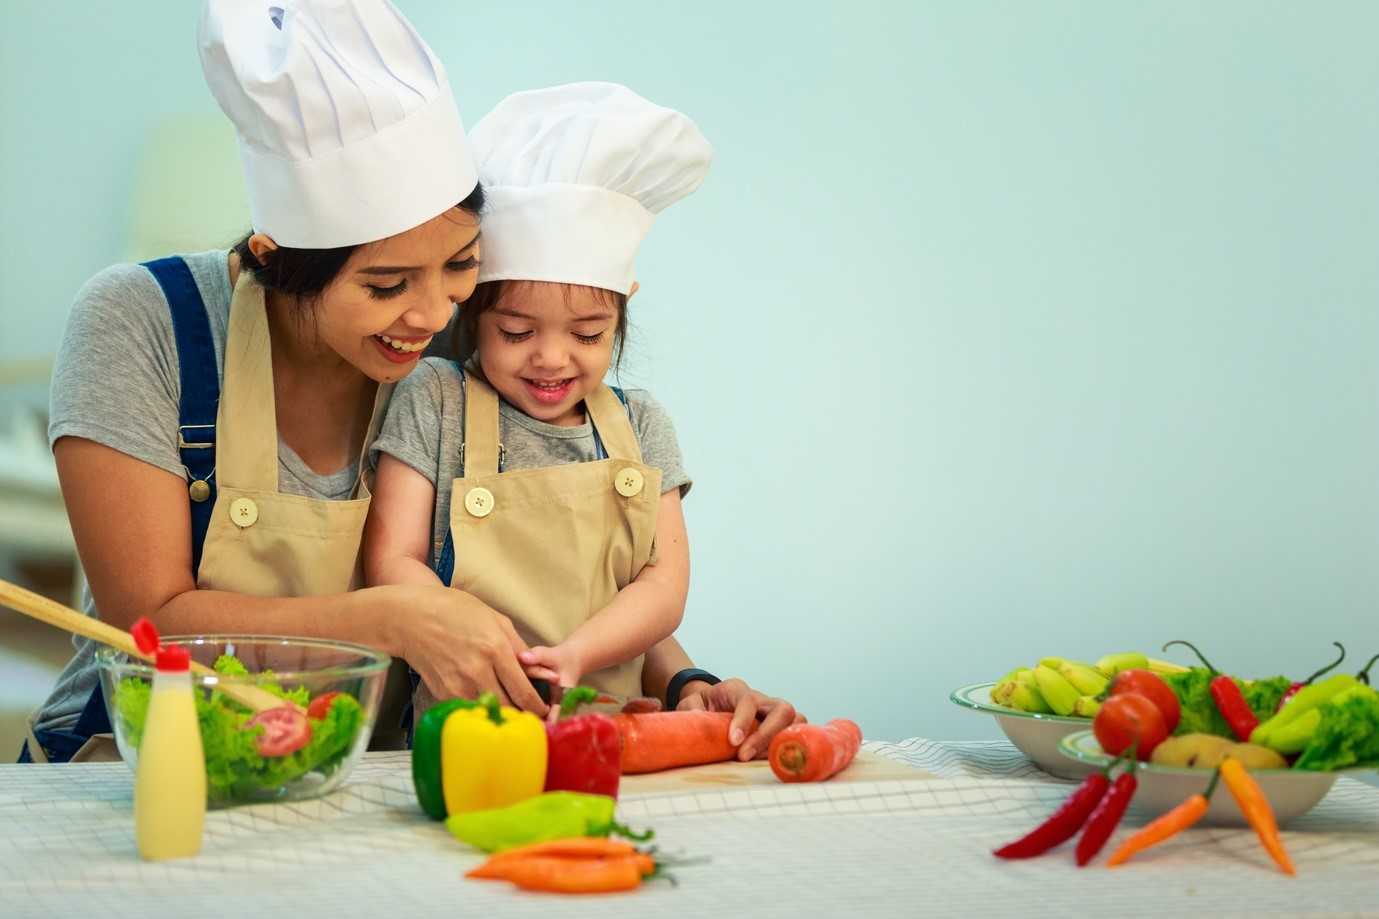 Cooking with your love ones